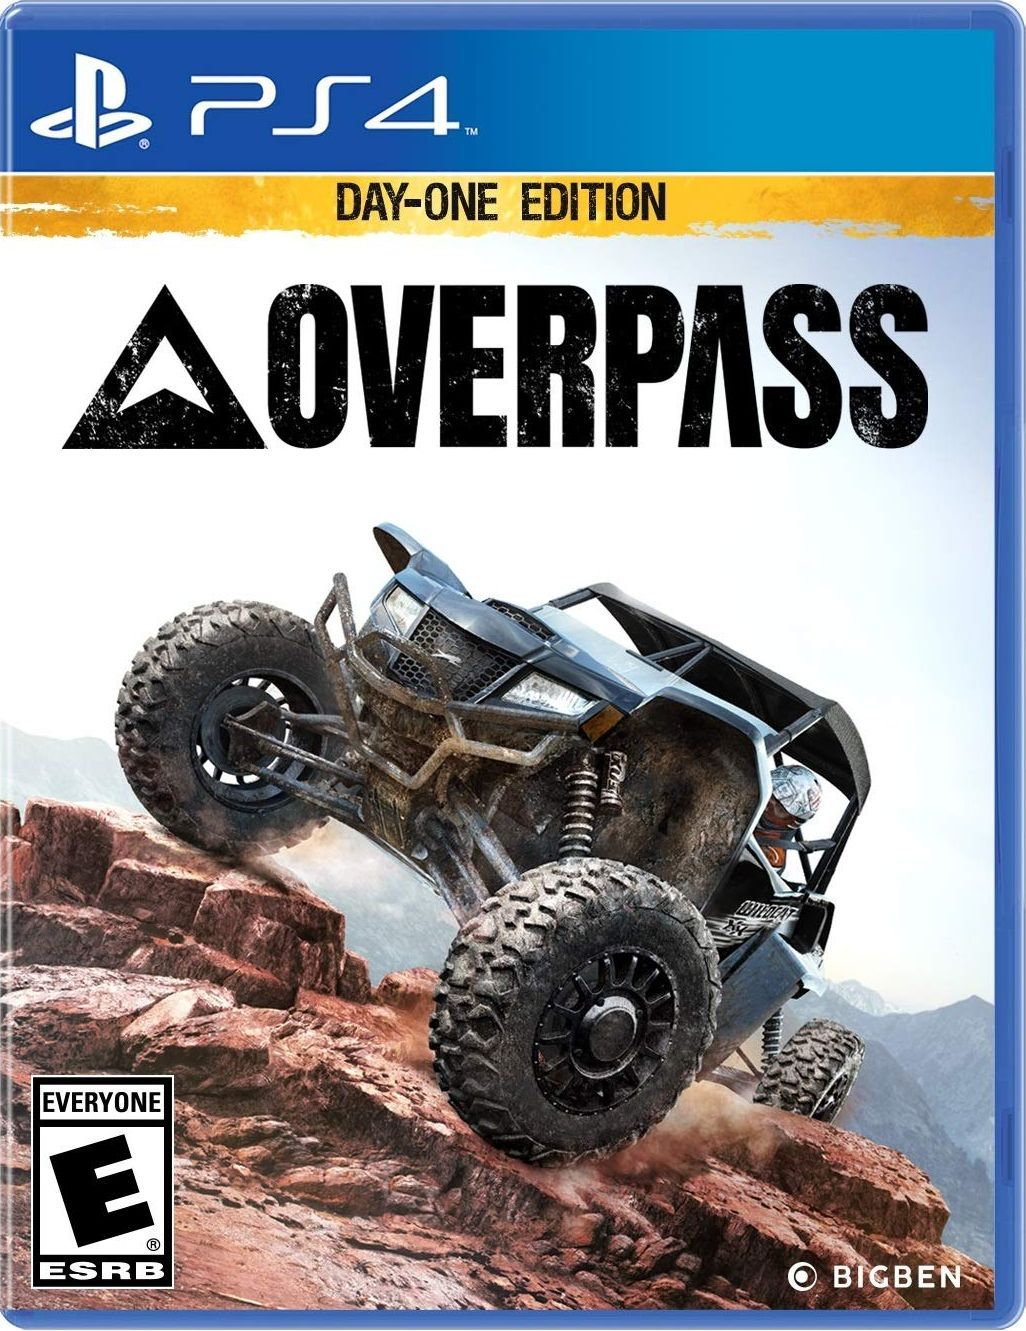 Overpass (With images) Xbox one games, Xbox one, Ps4